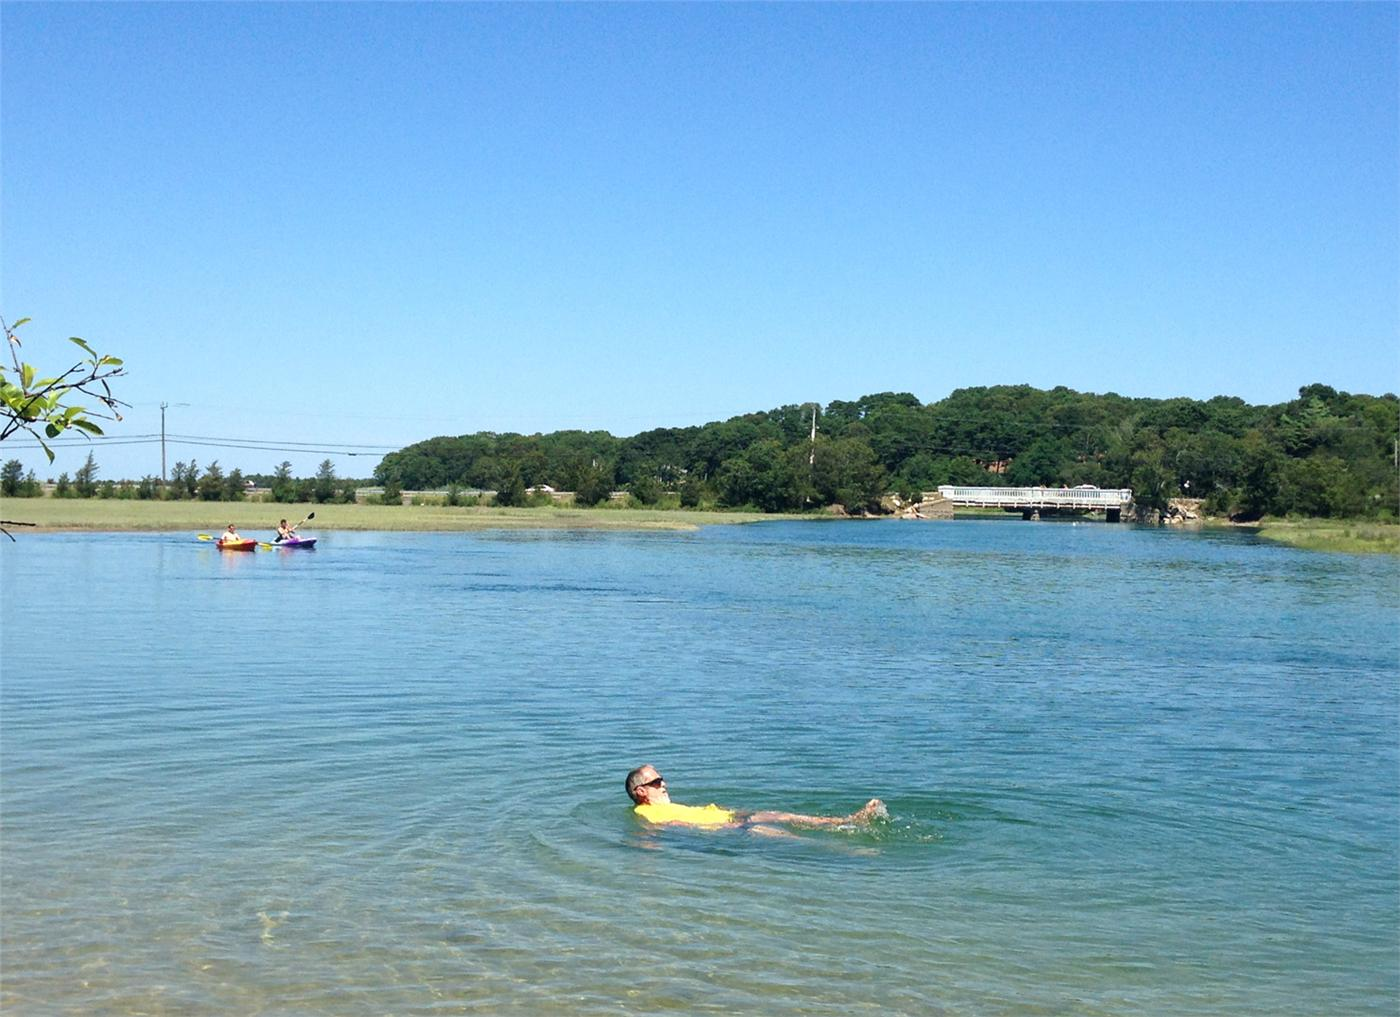 Love finding new places on the Cape. Last weekend we discovered the cool refreshing Scorton Creek. We swam and relaxed.